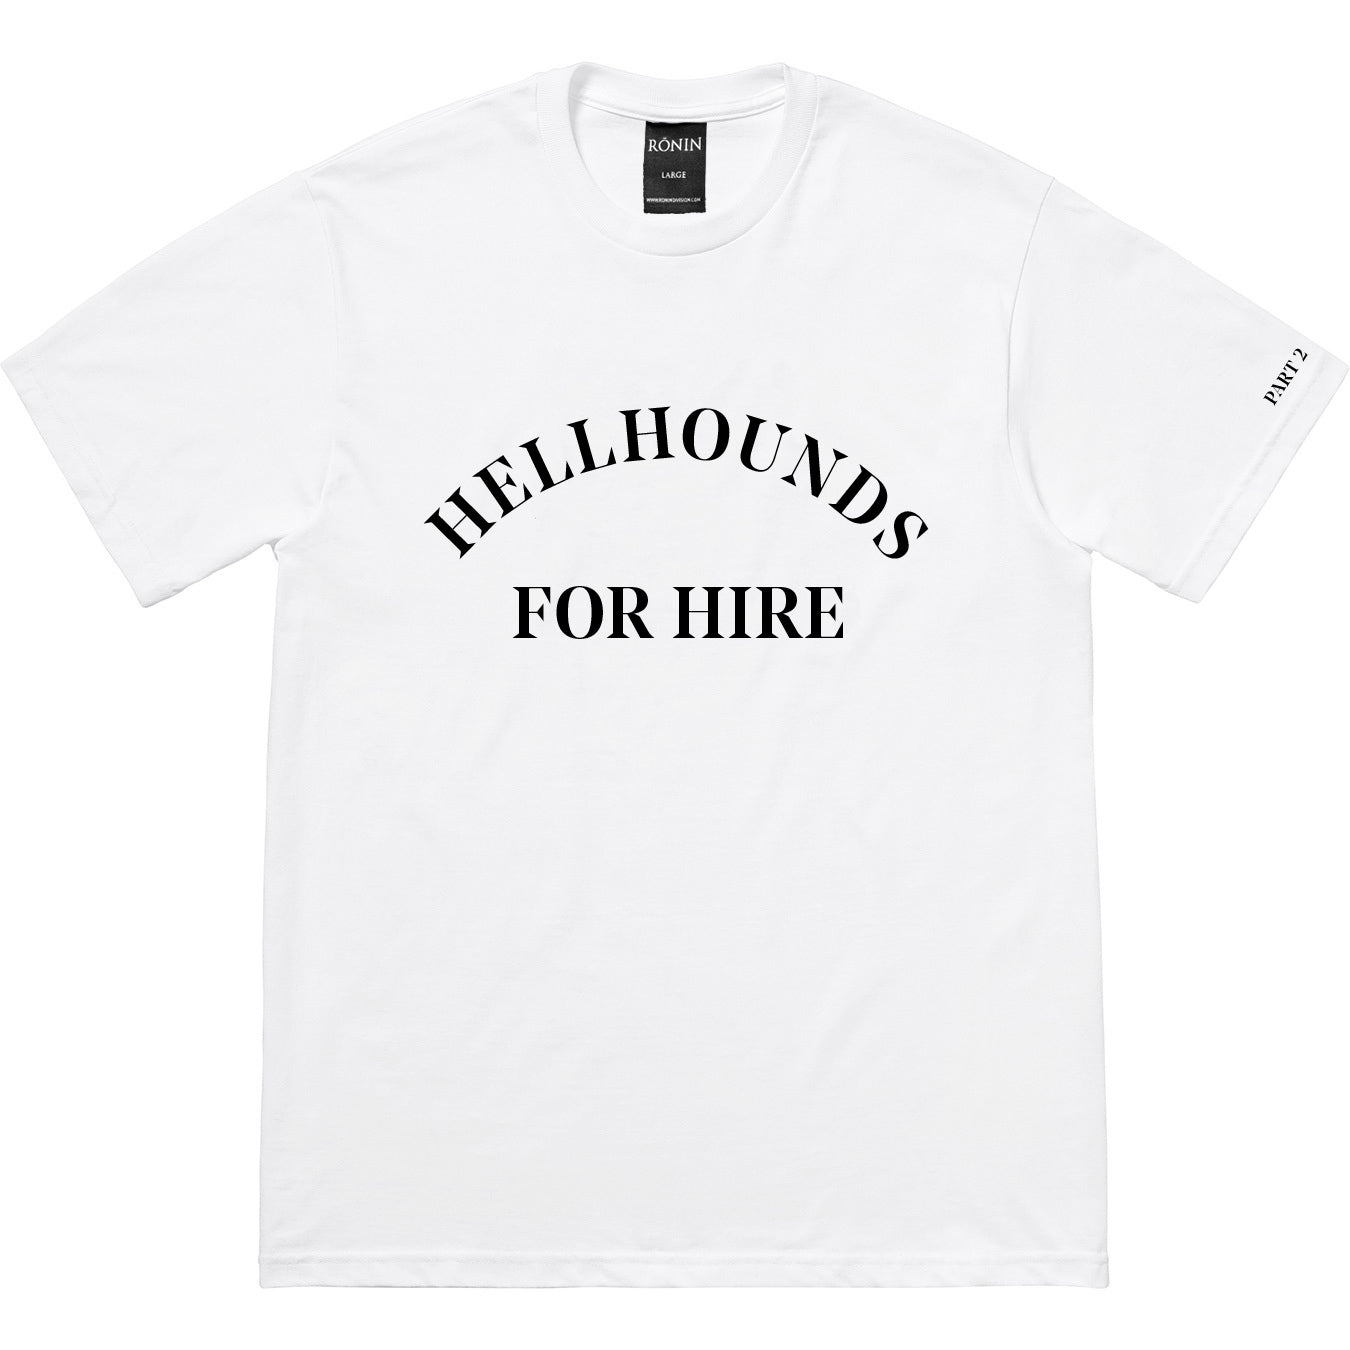 Hellhounds Part 2 Tee - White